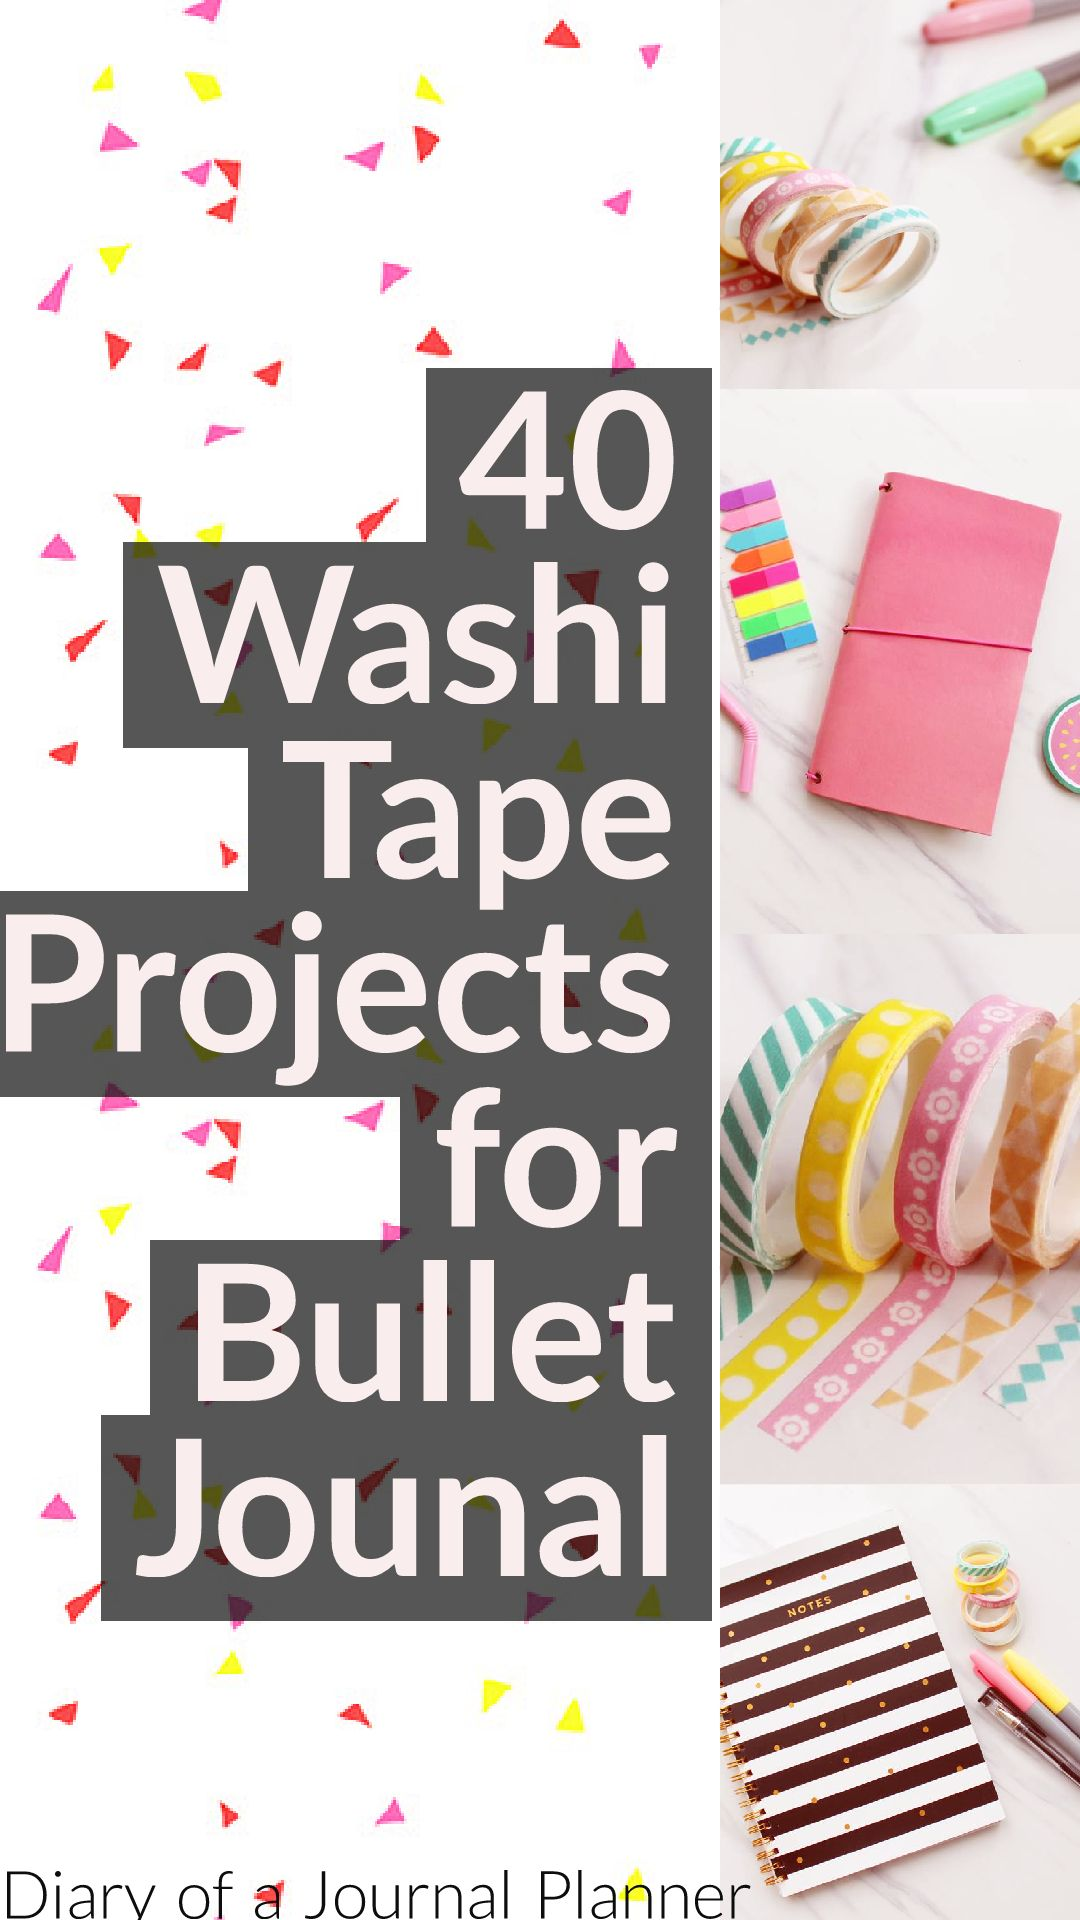 How to use washi tape in your bullet journal. many washi ideas and inspiration to decorate and imrpove your bullet journal pages